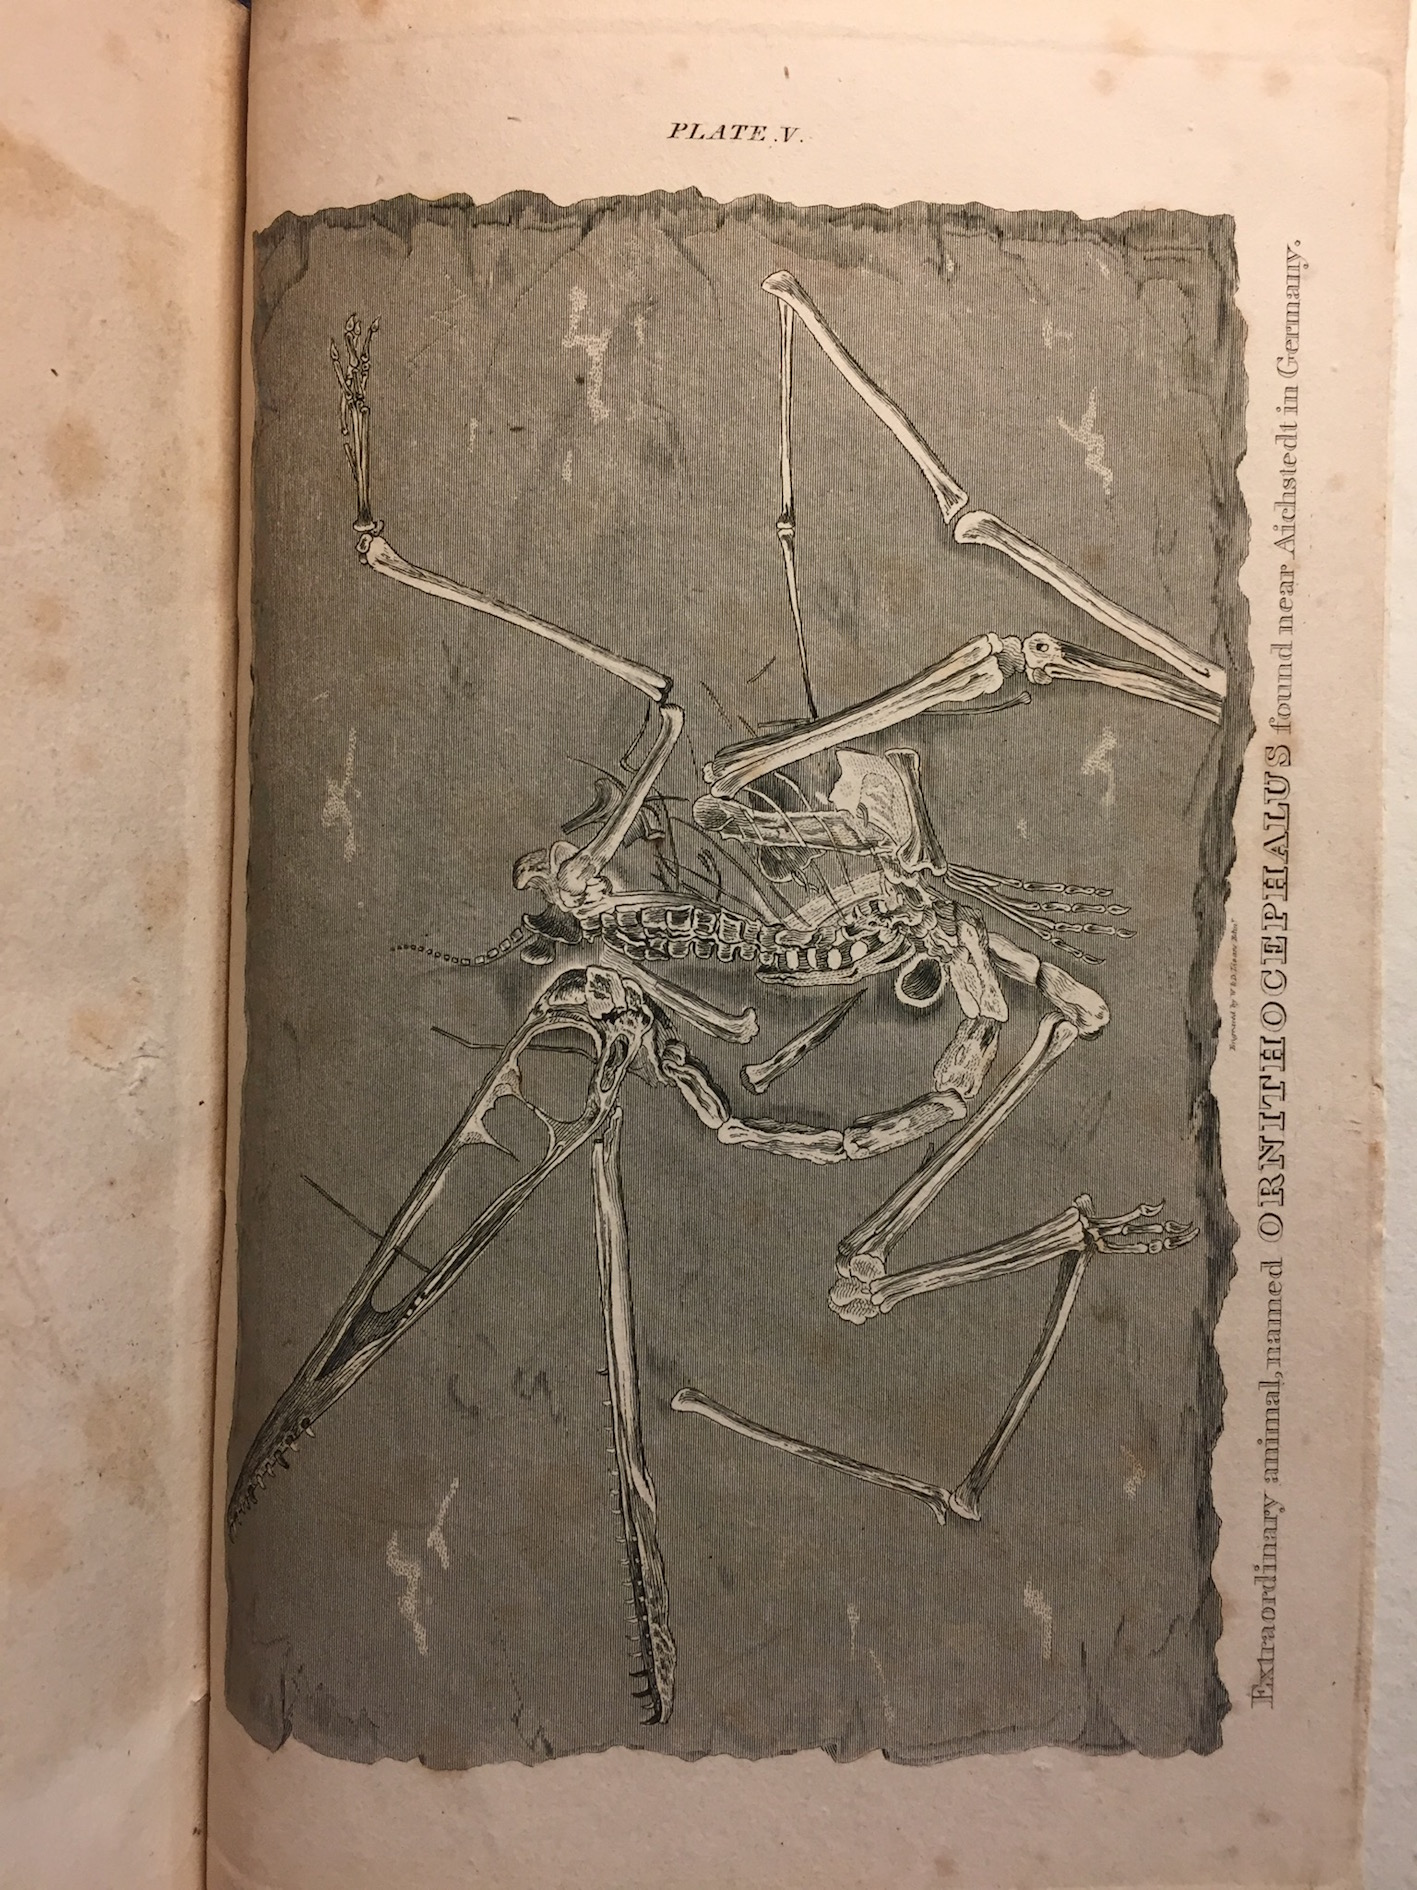 """Plate V: Extraordinary animal named Ornithocephalus found near Aichstedt in Germany."""